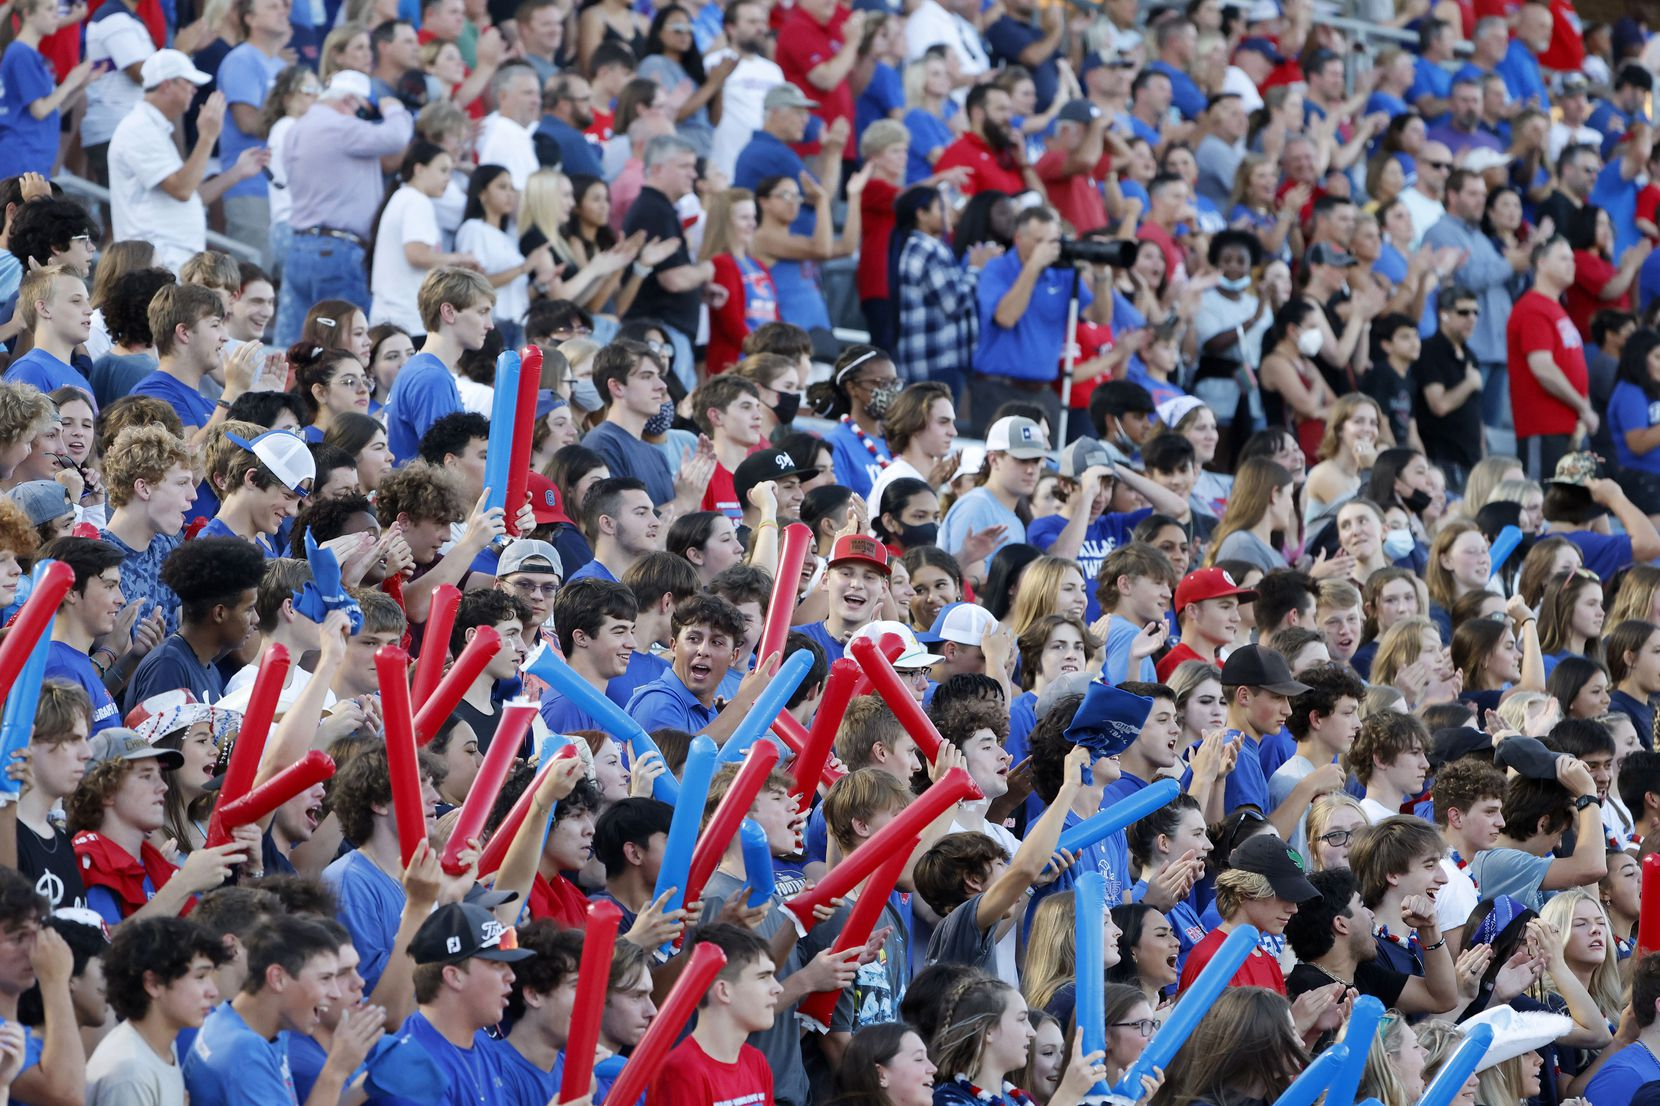 Grapevine fans cheer as they played Colleyville Heritage during the first half of their high school football game in Grapevine, Texas on Aug. 27, 2021. (Michael Ainsworth/Special Contributor)